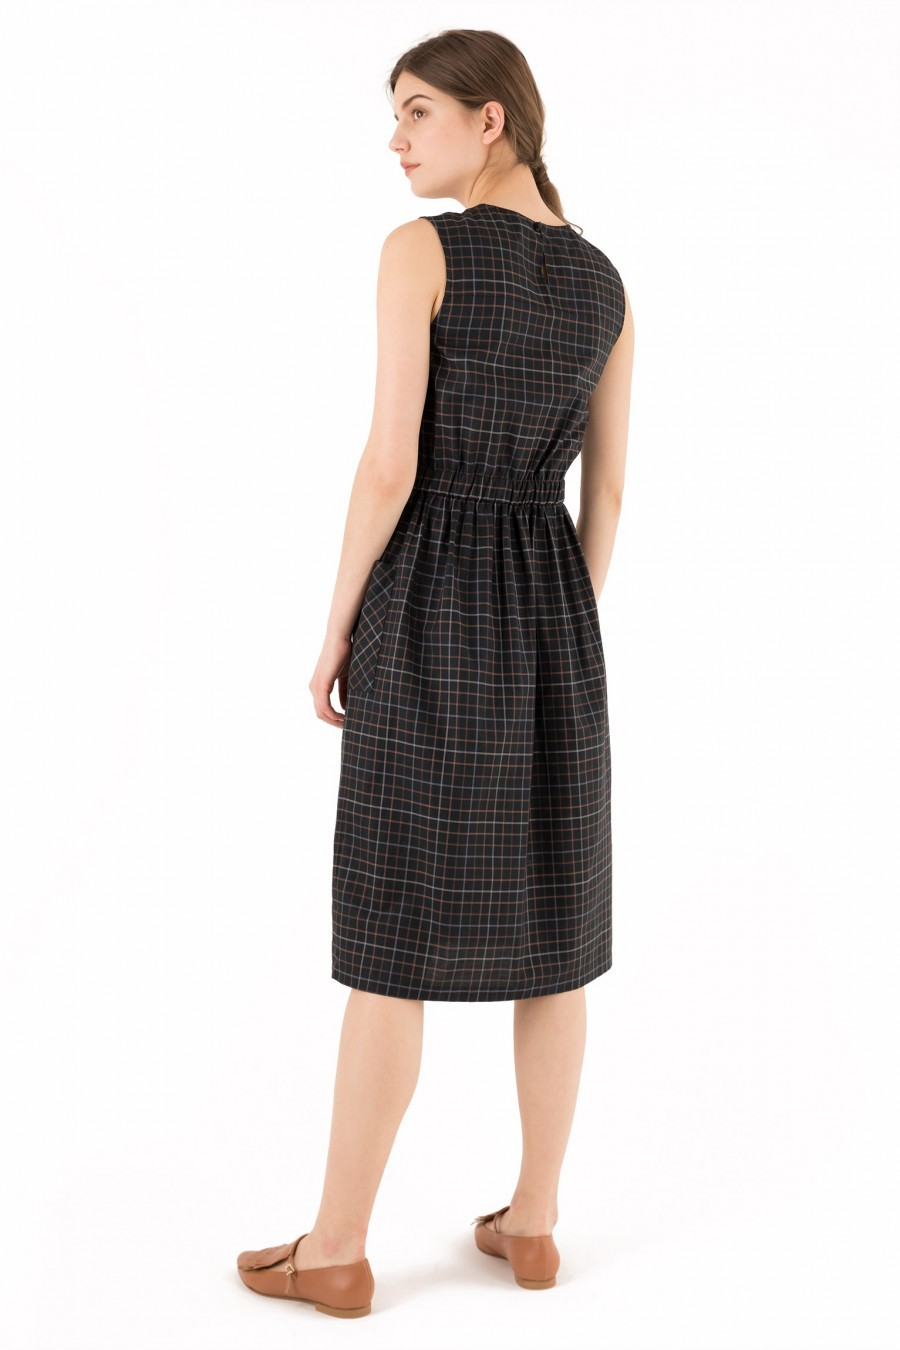 midi dress black Lazzari